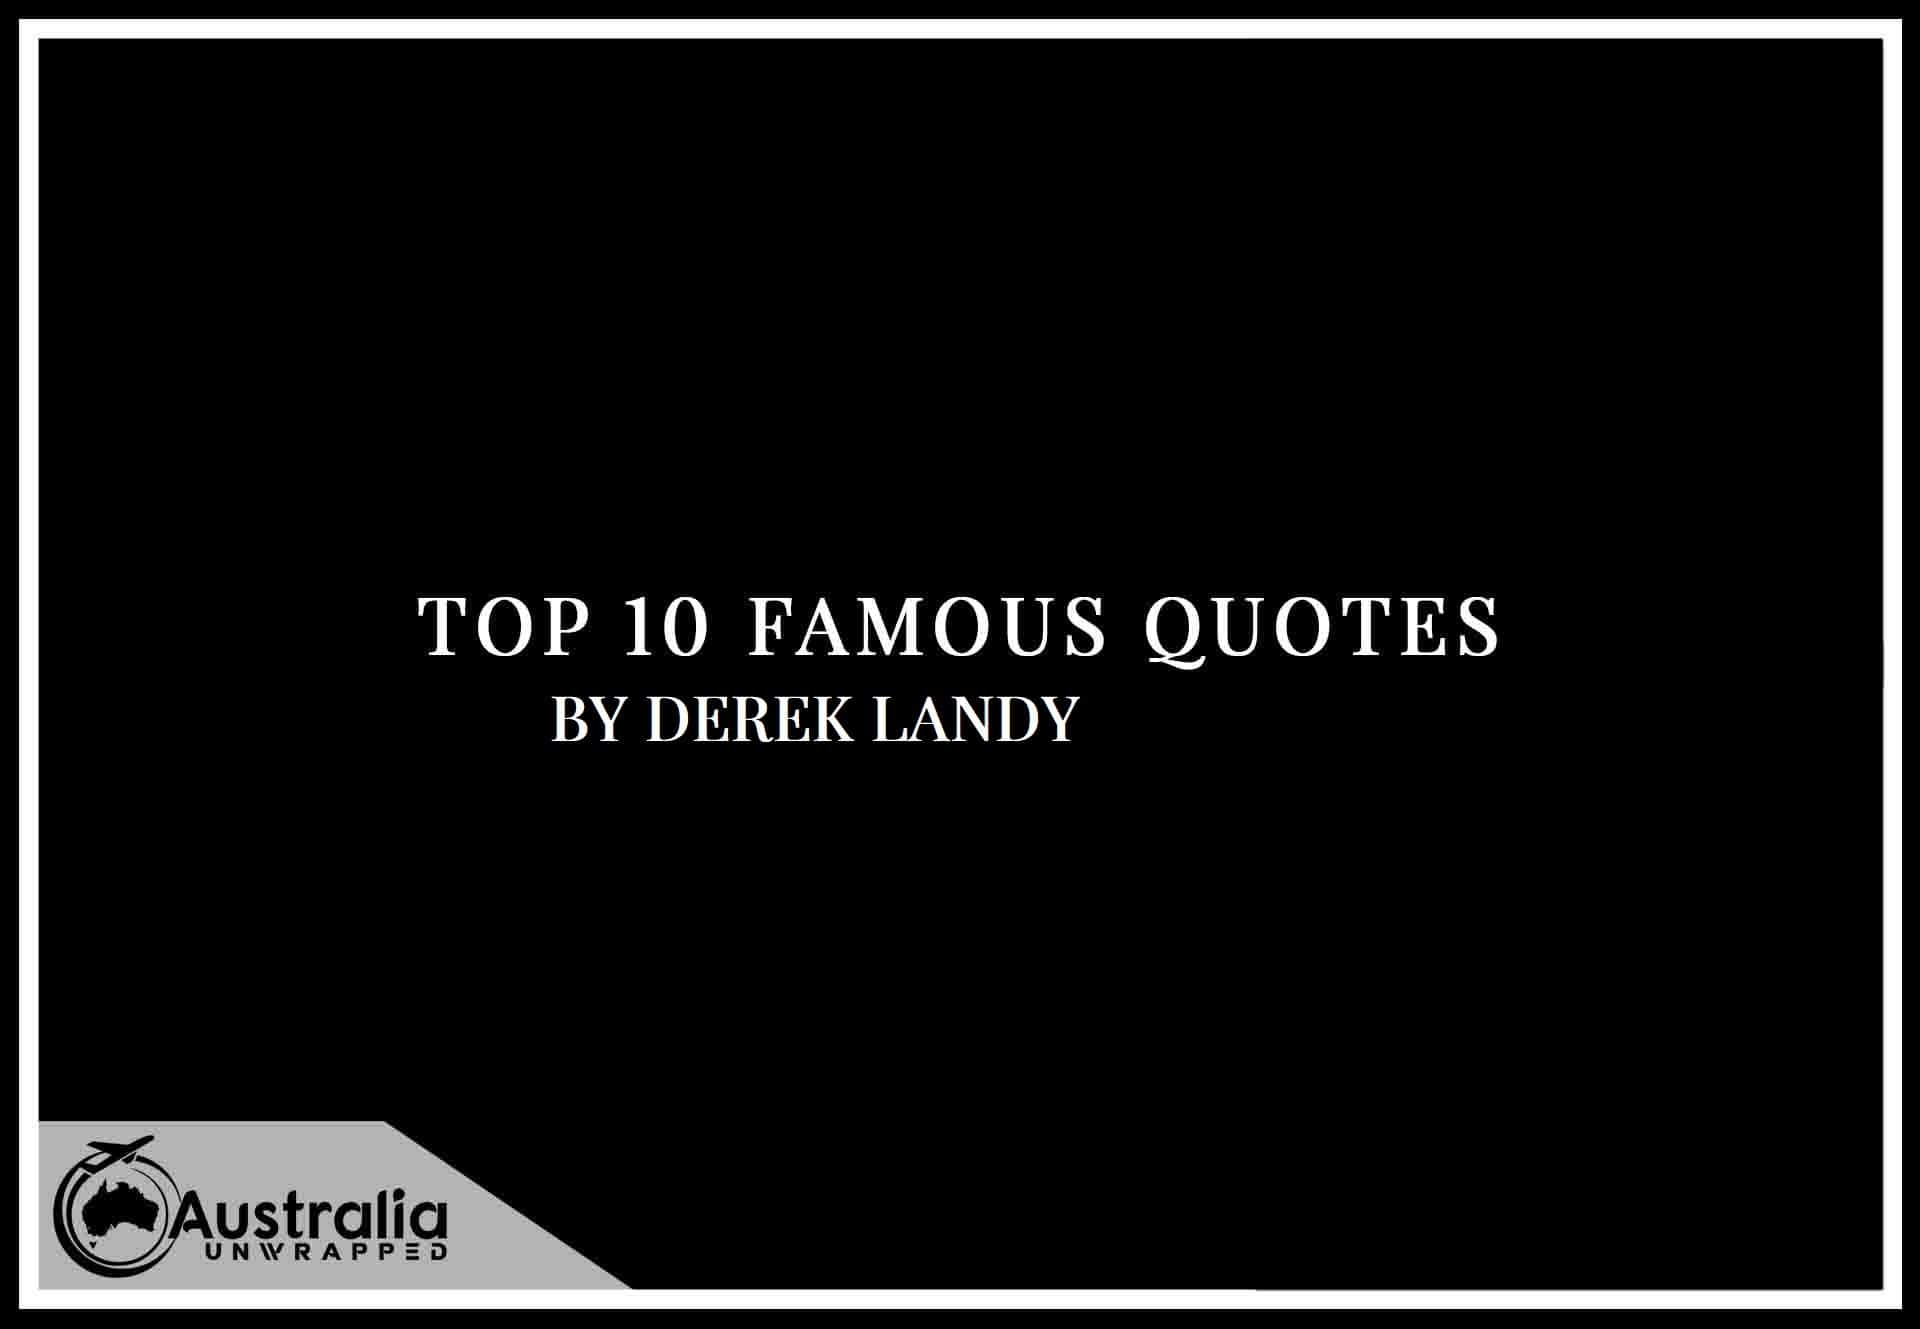 Top 10 Famous Quotes by Author Derek Landy